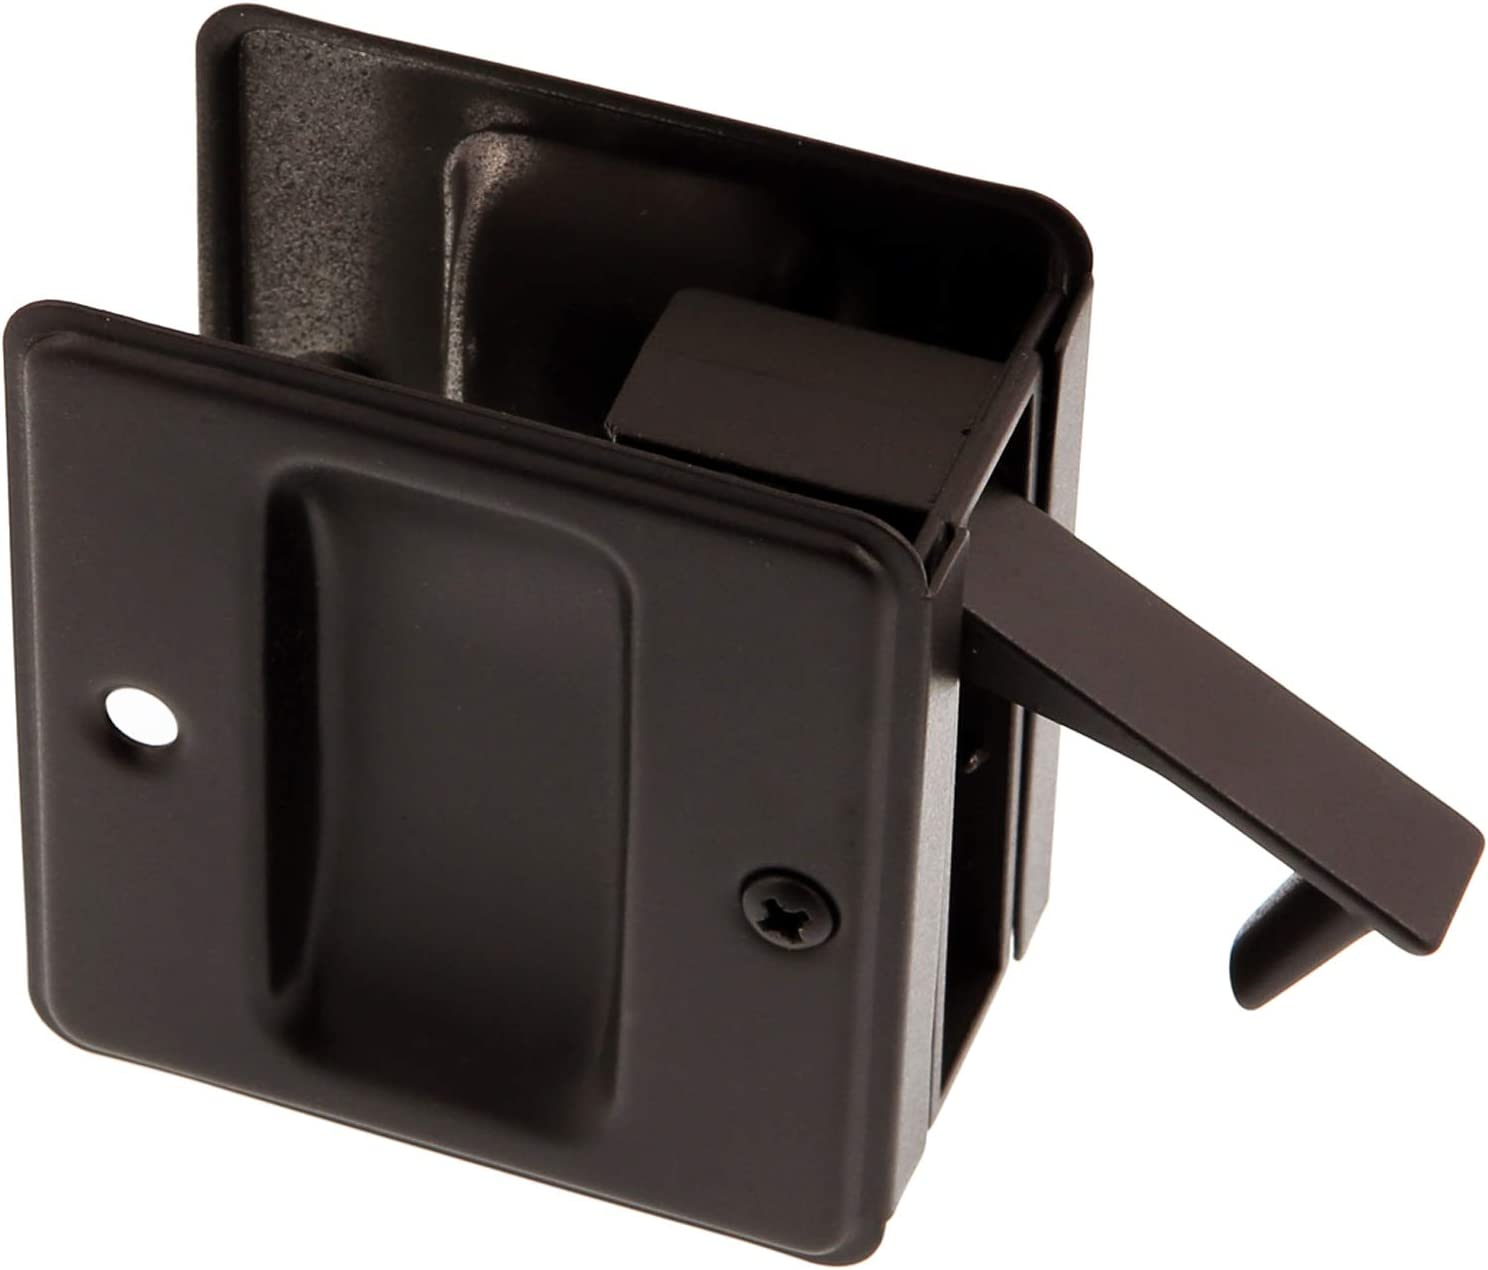 Matte Black Simons 25410-019 Premium Quality Solid Brass Pocket Passage Door Pull idh by St